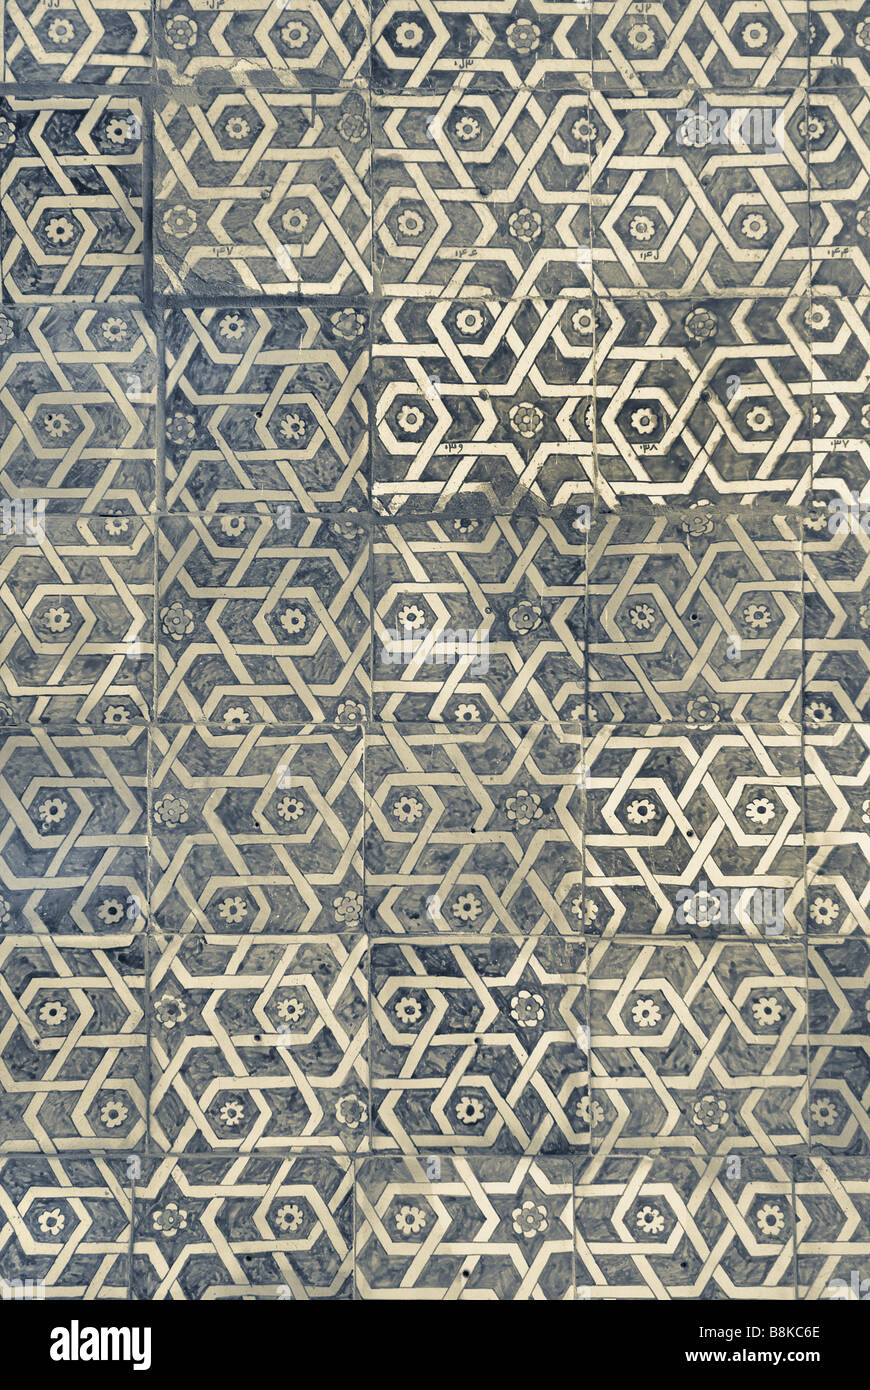 Tiled background with oriental ornaments - Stock Image